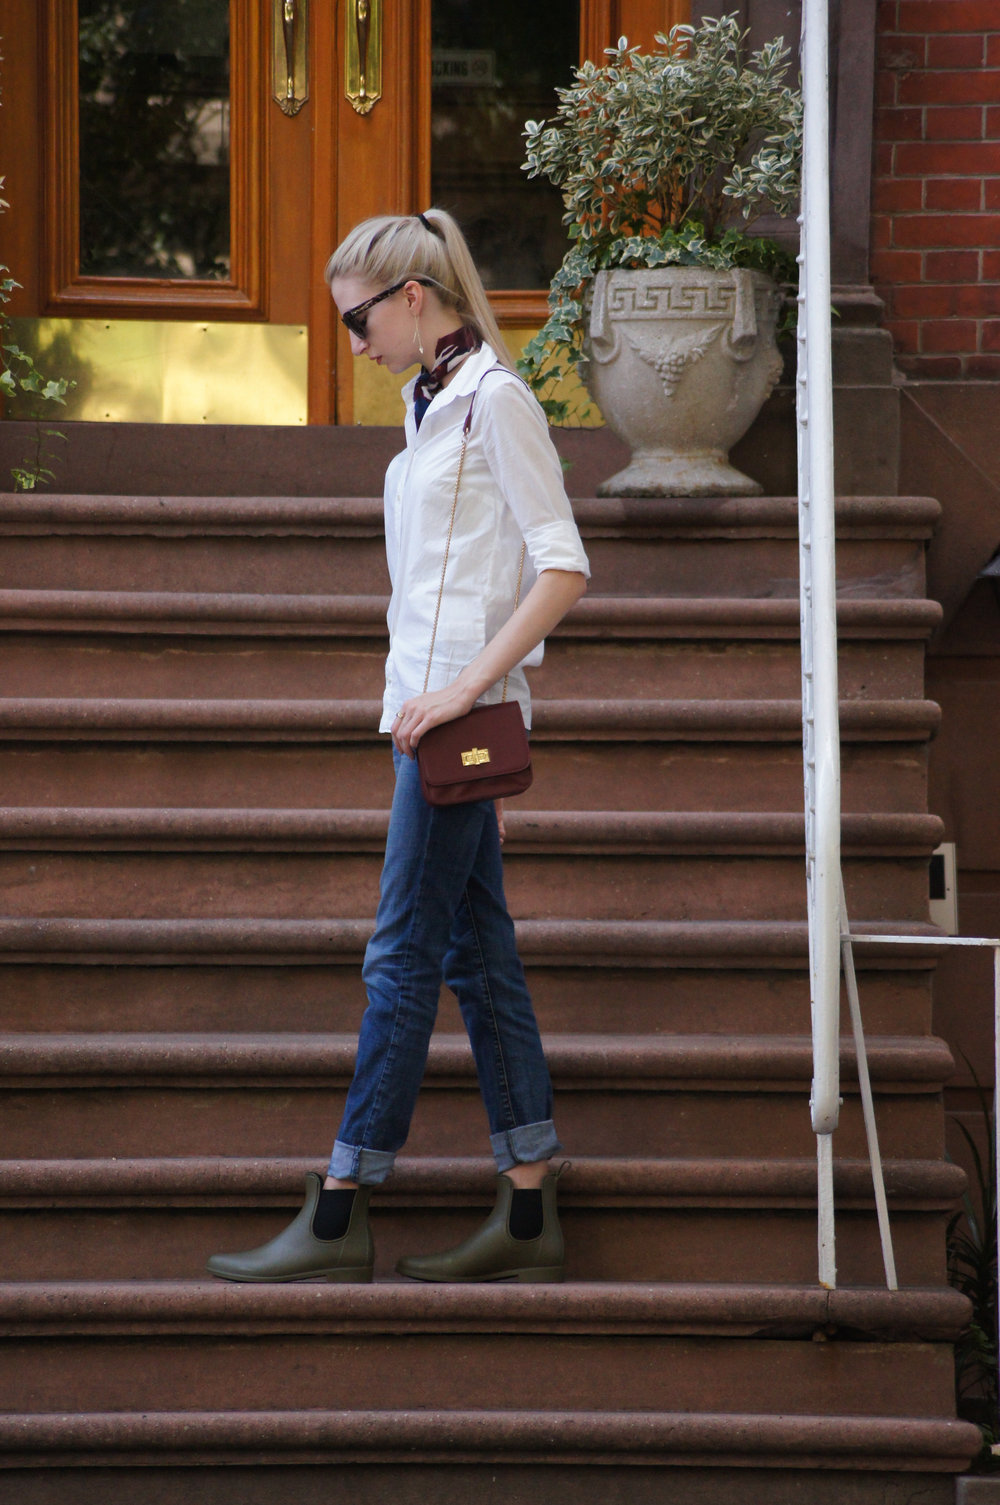 J.Crew white perfect shirt and wilderness knot tied neck scarf, american eagle relaxed jeans, J.Crew matte chelsea rain boots in olive green, LOFT oversized sunglasses, Kendra Scott elisia drusy necklace and kimmel threader earrings, whowhatwear micro bag in burgundy